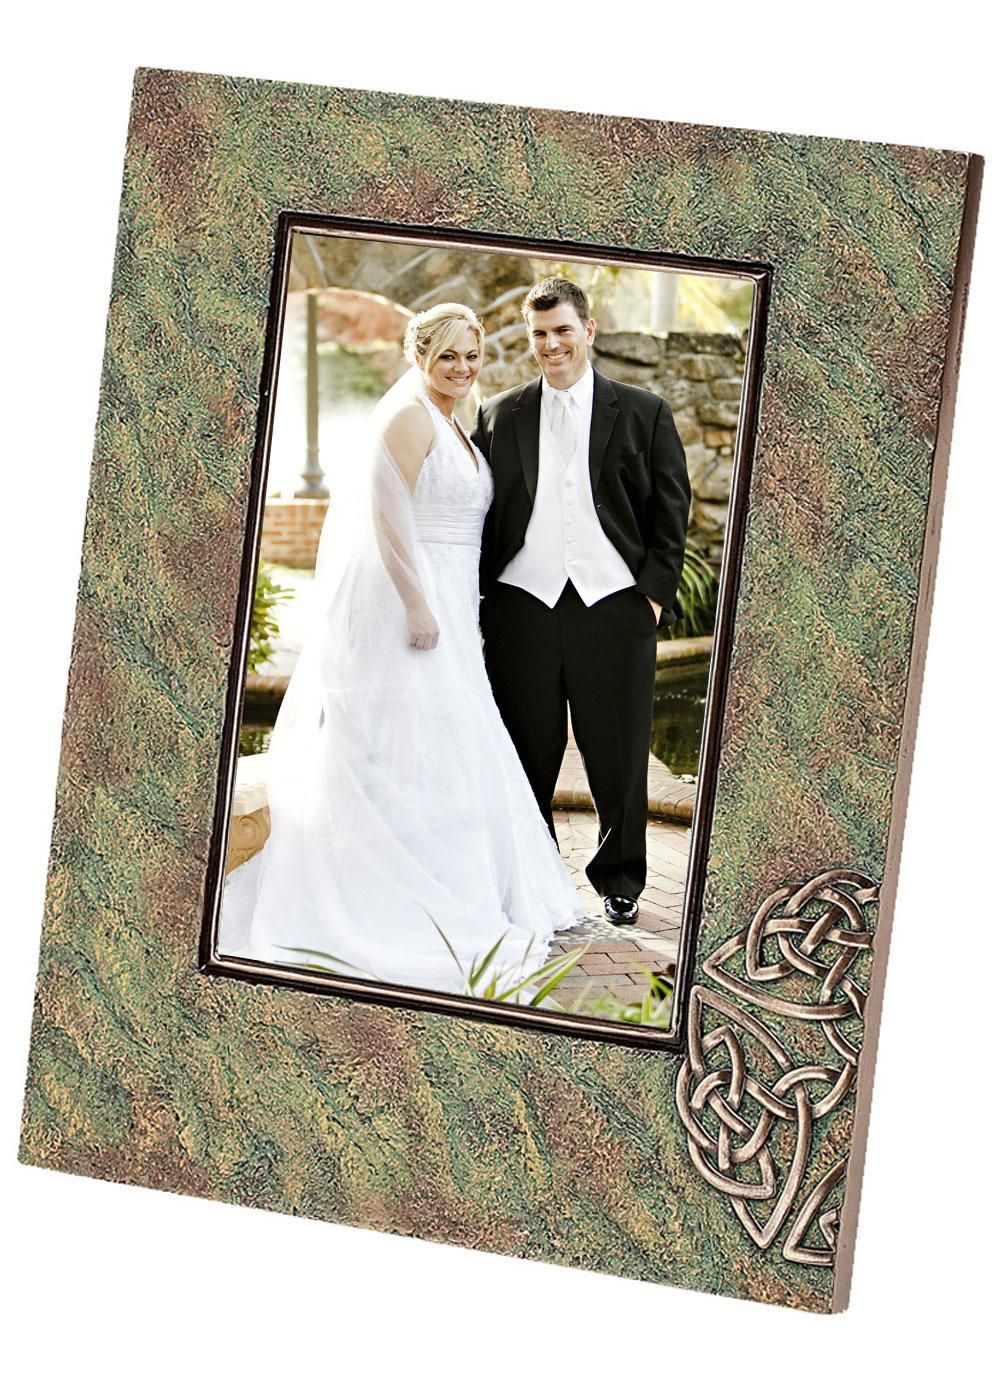 Genesis Celtic Frame This Genesis Celtic Frame Has Been Beautifully Crafted From Cold Cast Bronze Made In Co Irish Wedding Gifts Irish Gifts Irish Traditions